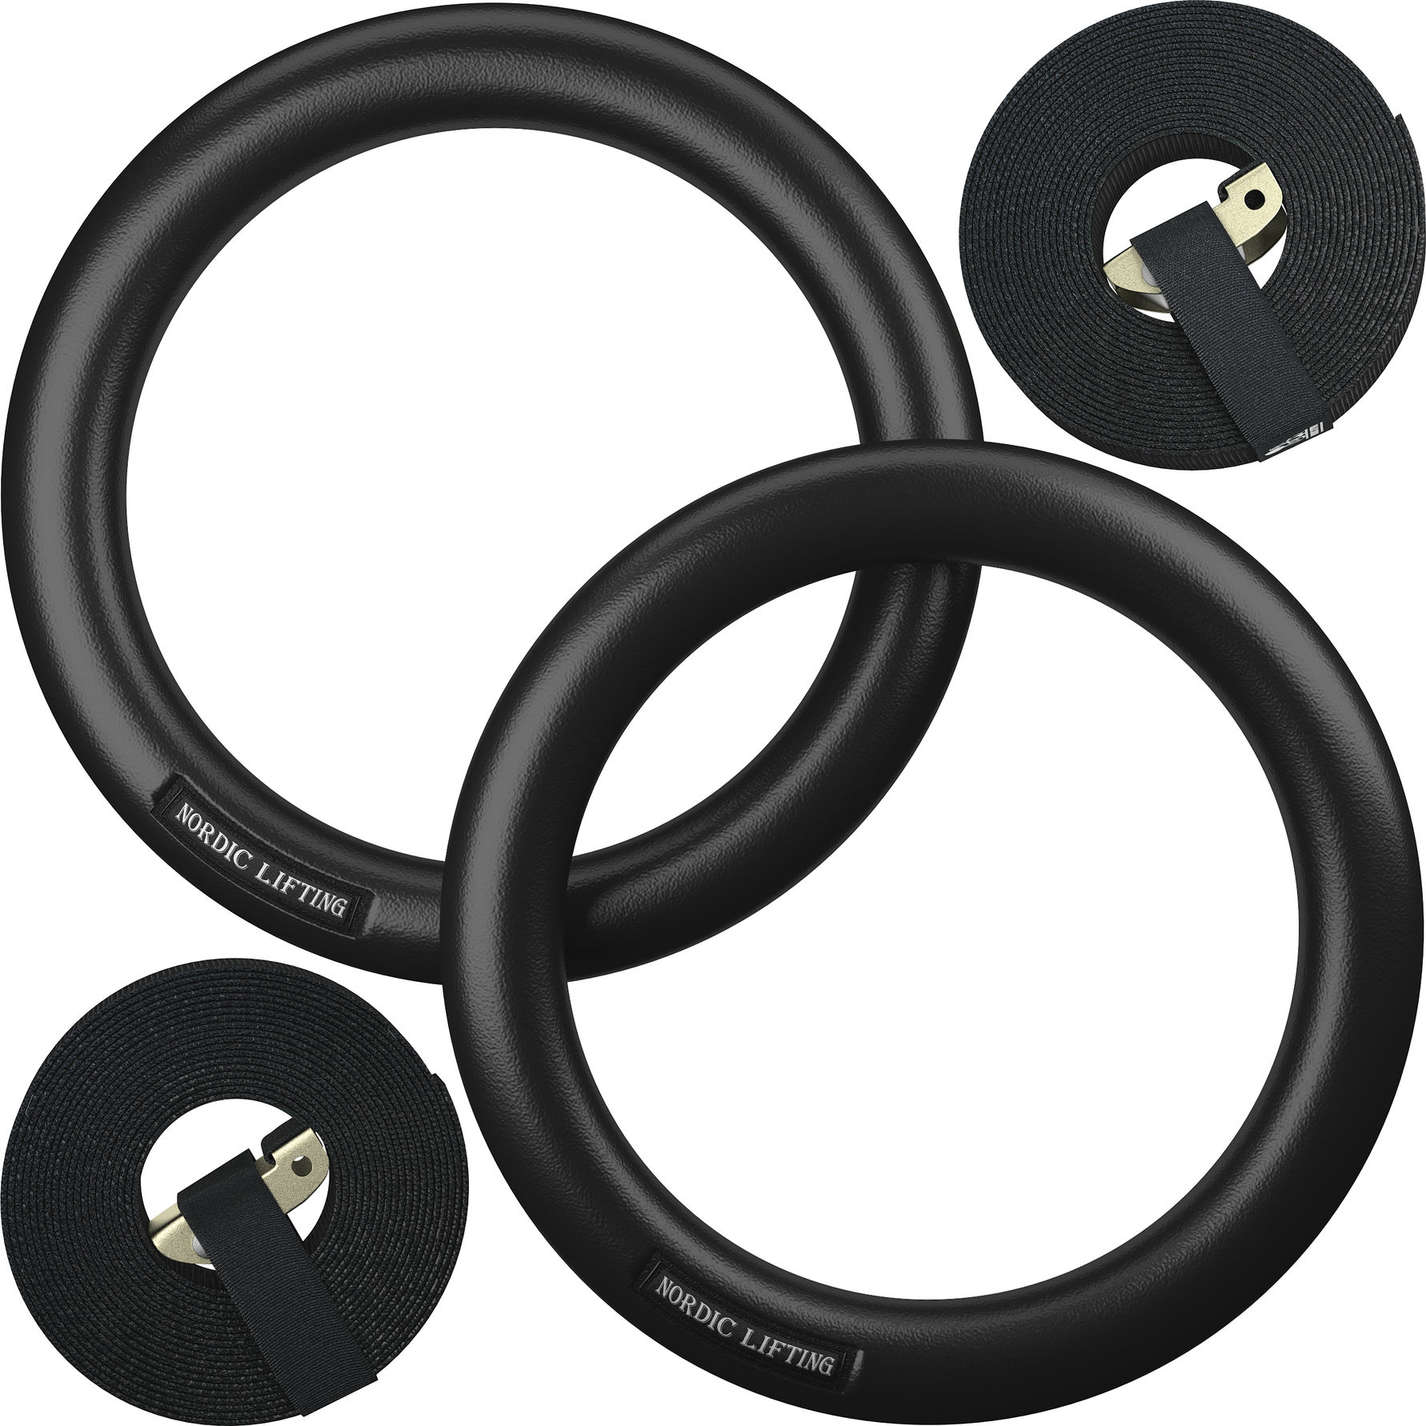 Black Gymnastic Rings Set